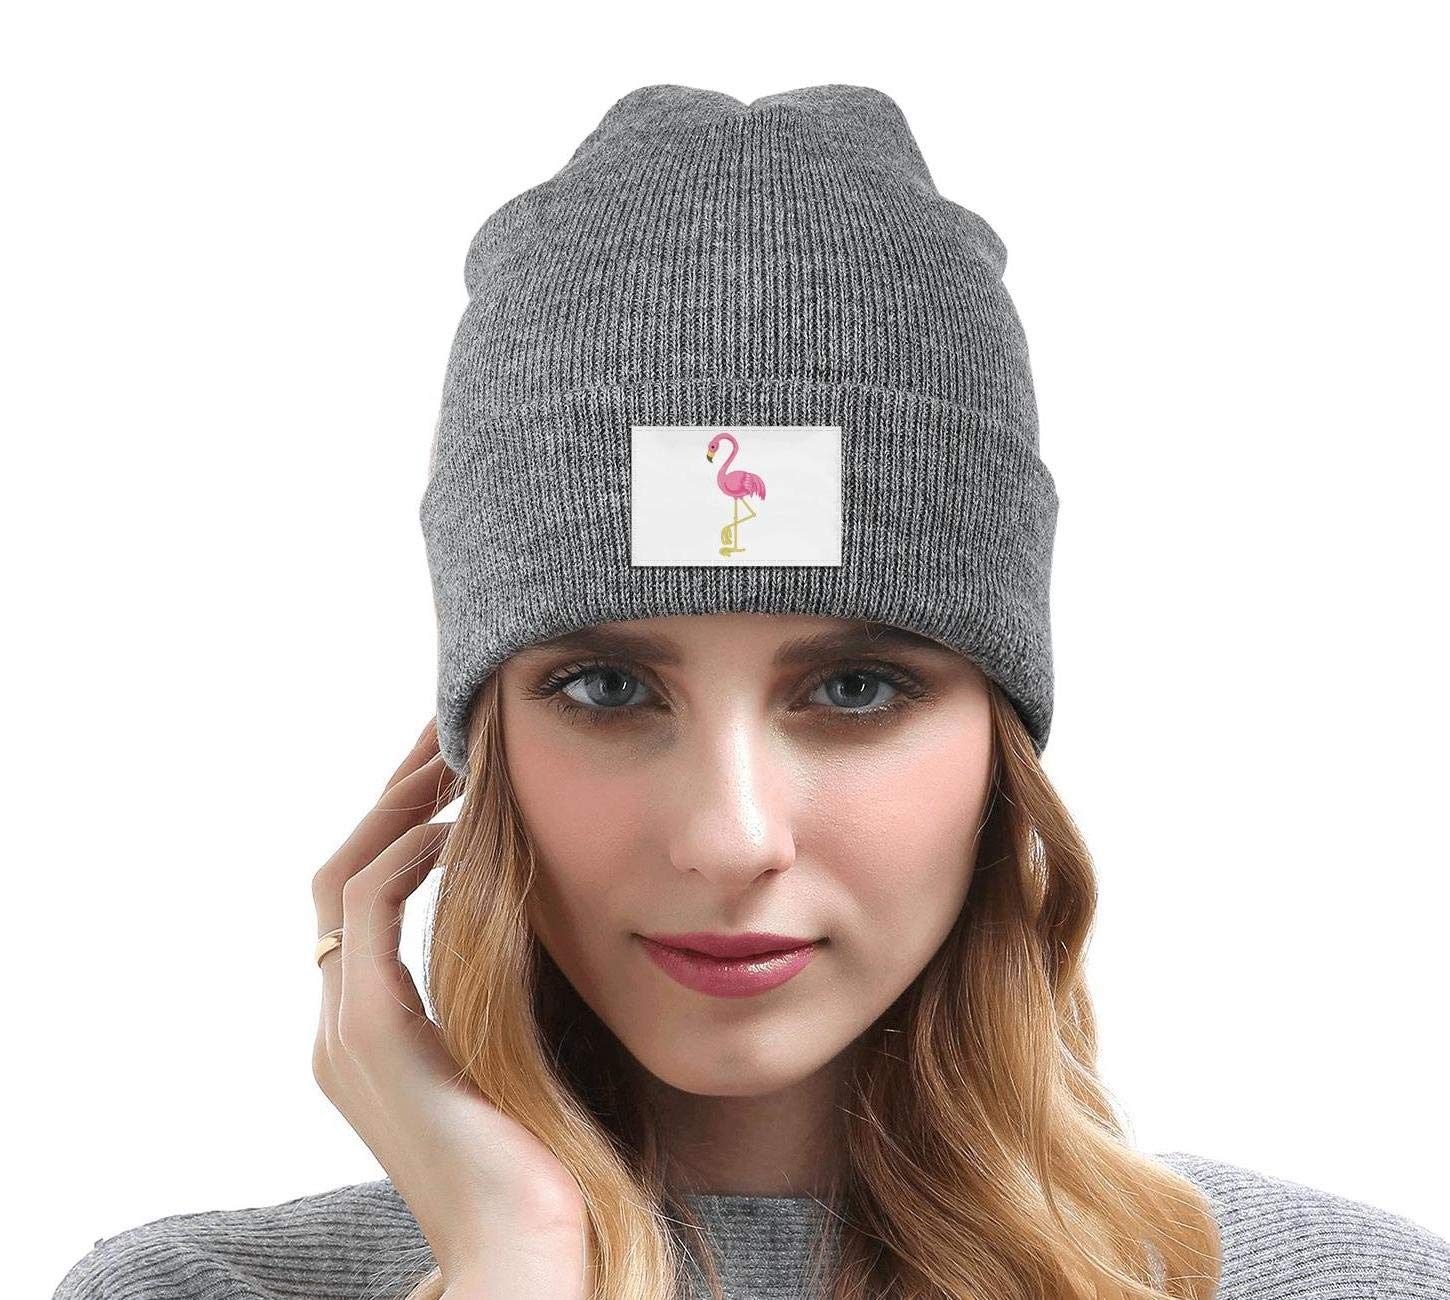 gigiring Being a Flamingo Gifts Winter Cuff Beanie Hat Skull Cap for Men Women